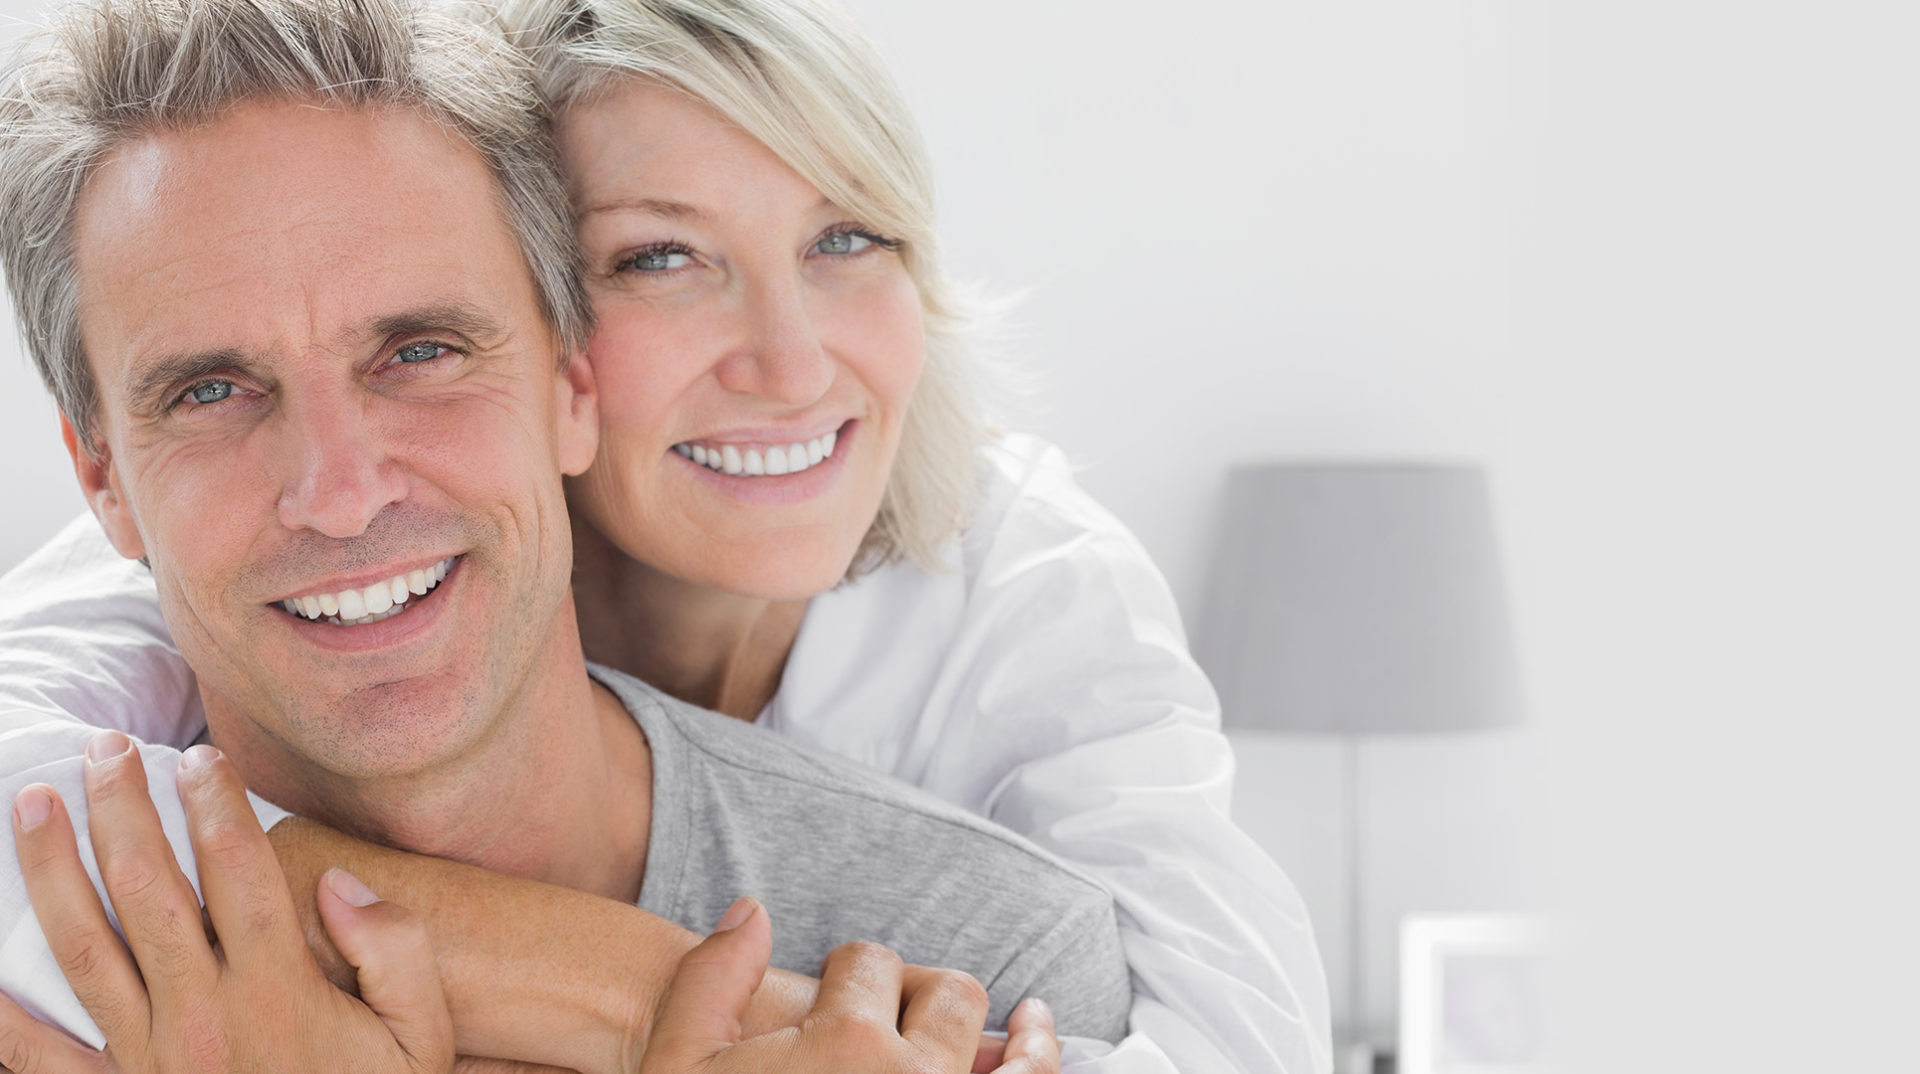 aesthetic treatments for middle aged couples